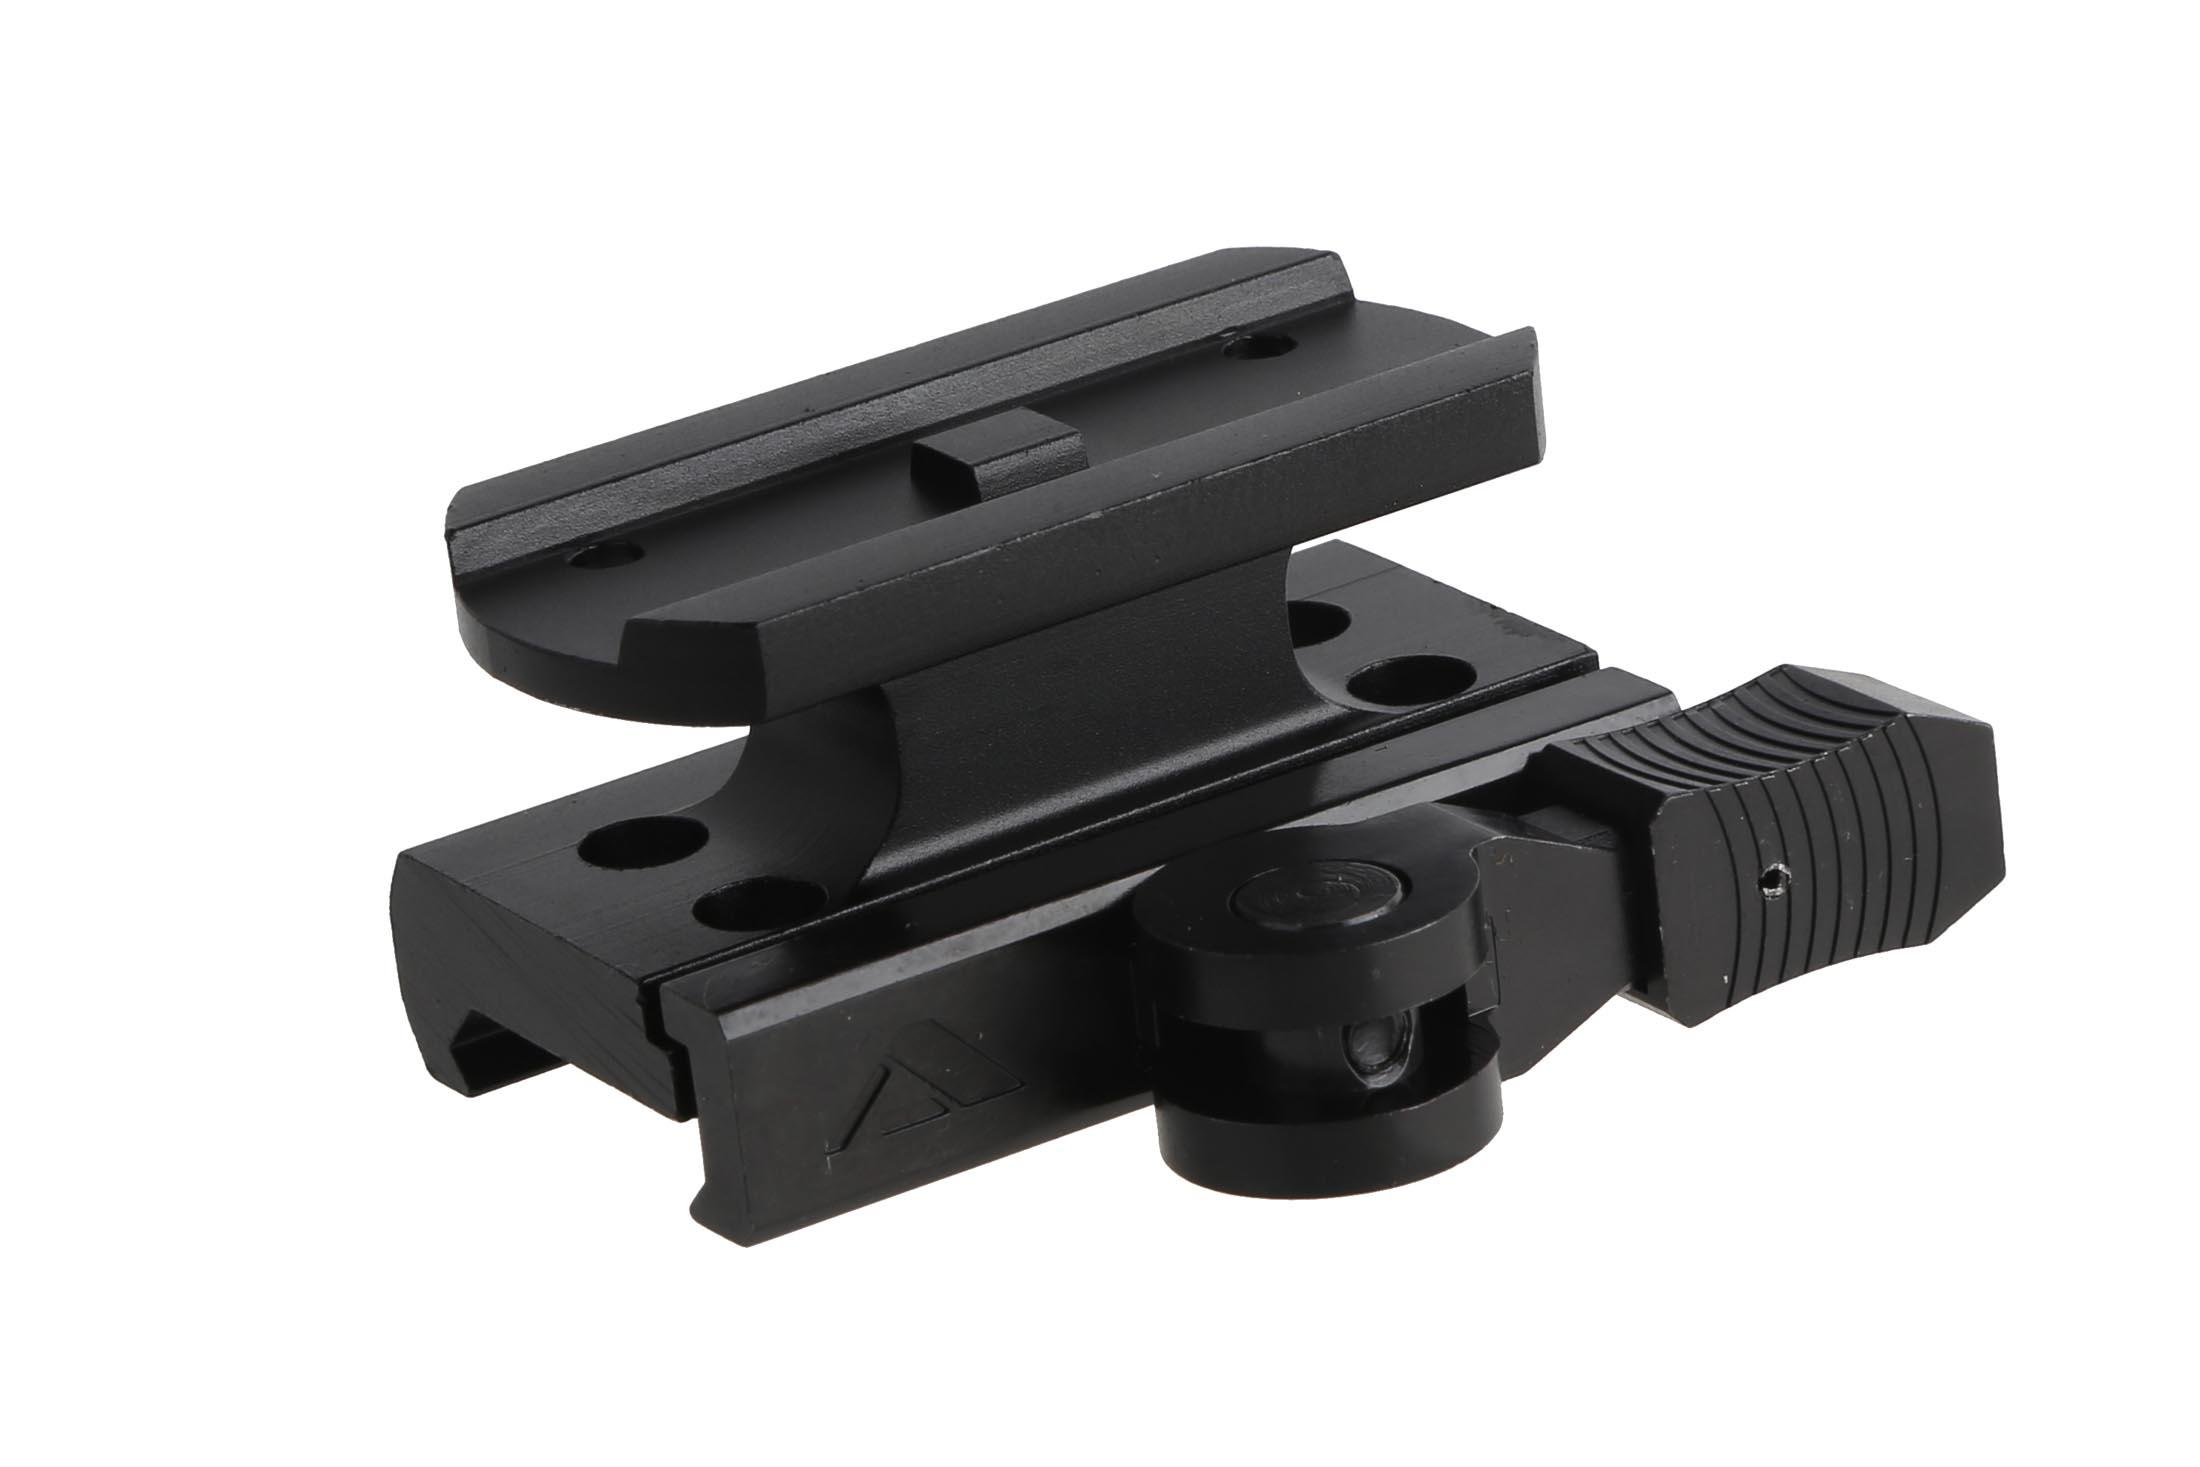 AimSports T1 Quick Release Mount - Absolute Co-Witness